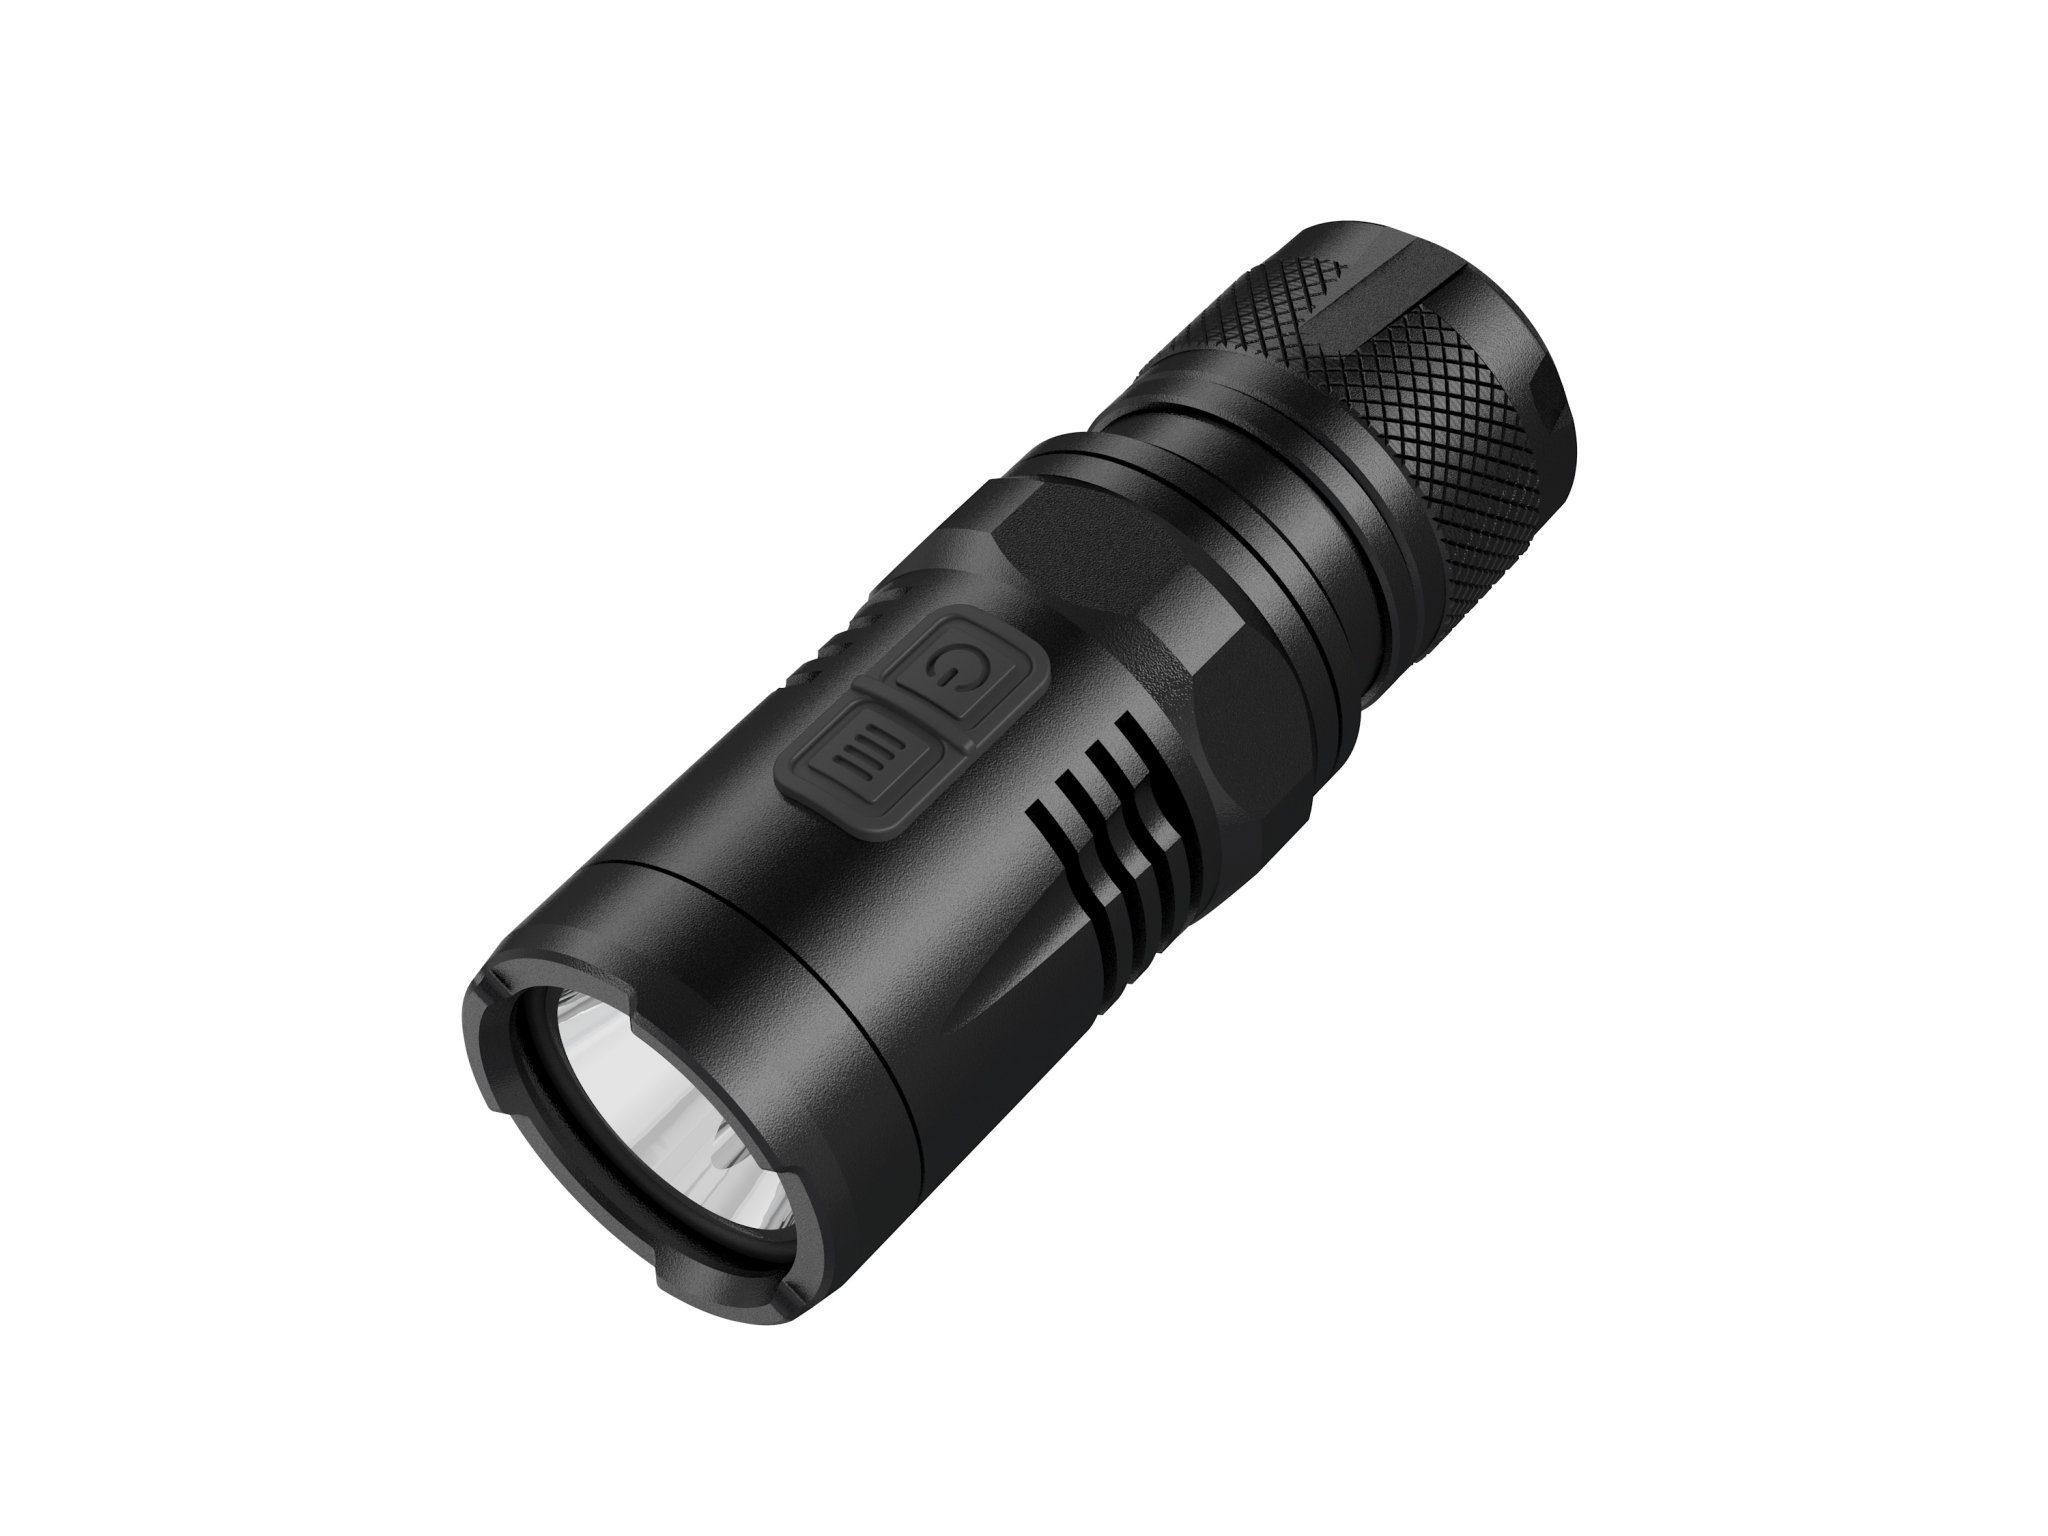 NITECORE Camping-Beleuchtung »LED EC Modell 11 Taschenlampe«